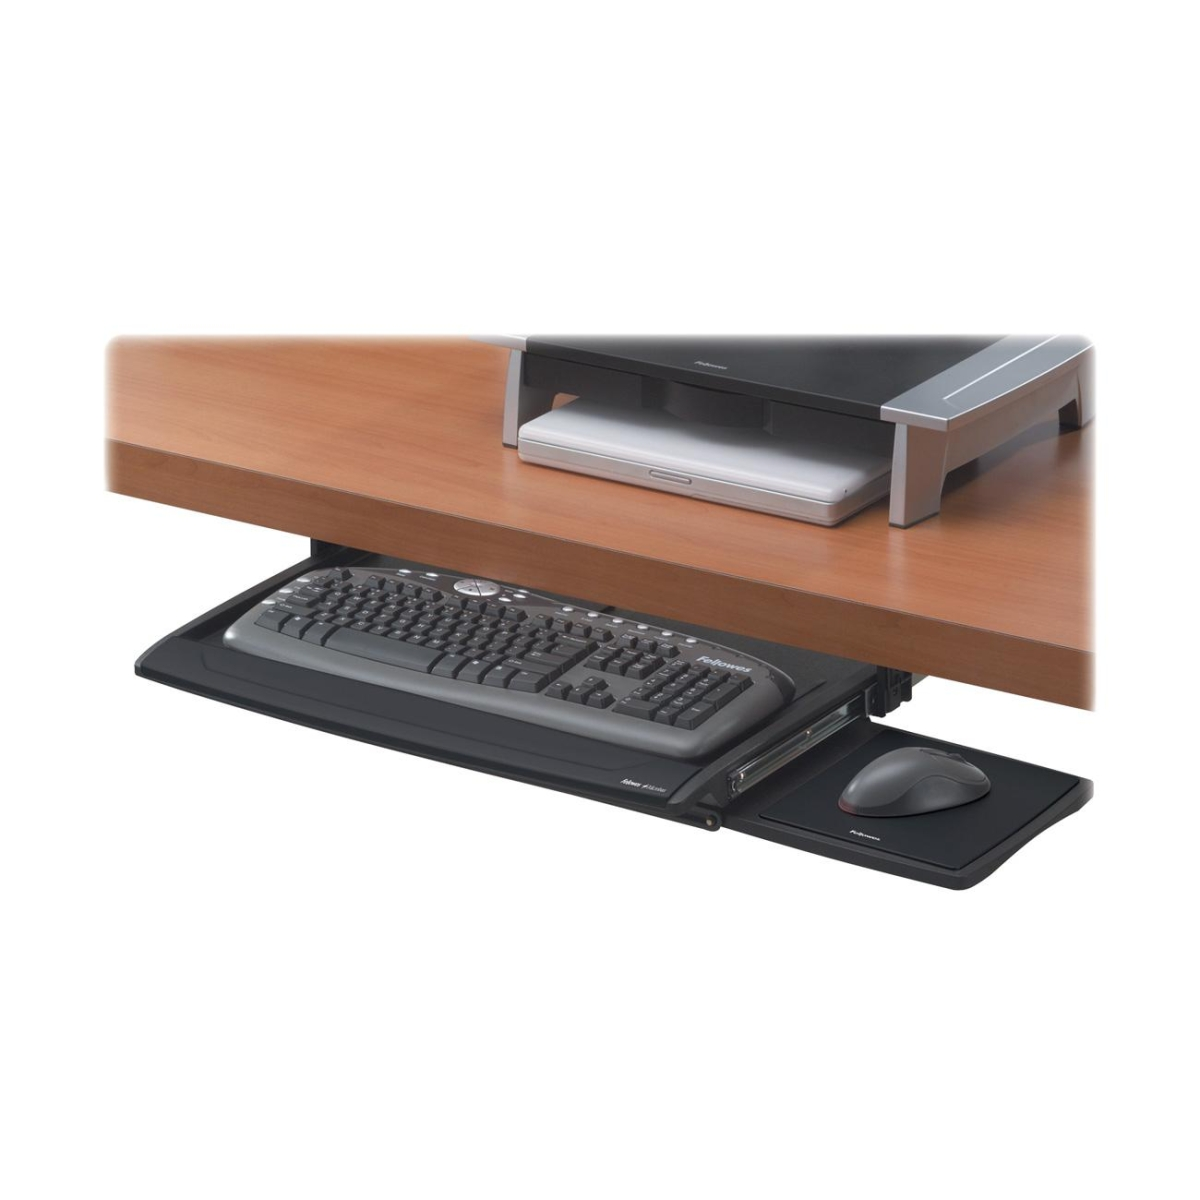 Office Suites Deluxe Keyboard Drawer - 2.5 inch x 30.9 inch x 14.1 inch - Silver